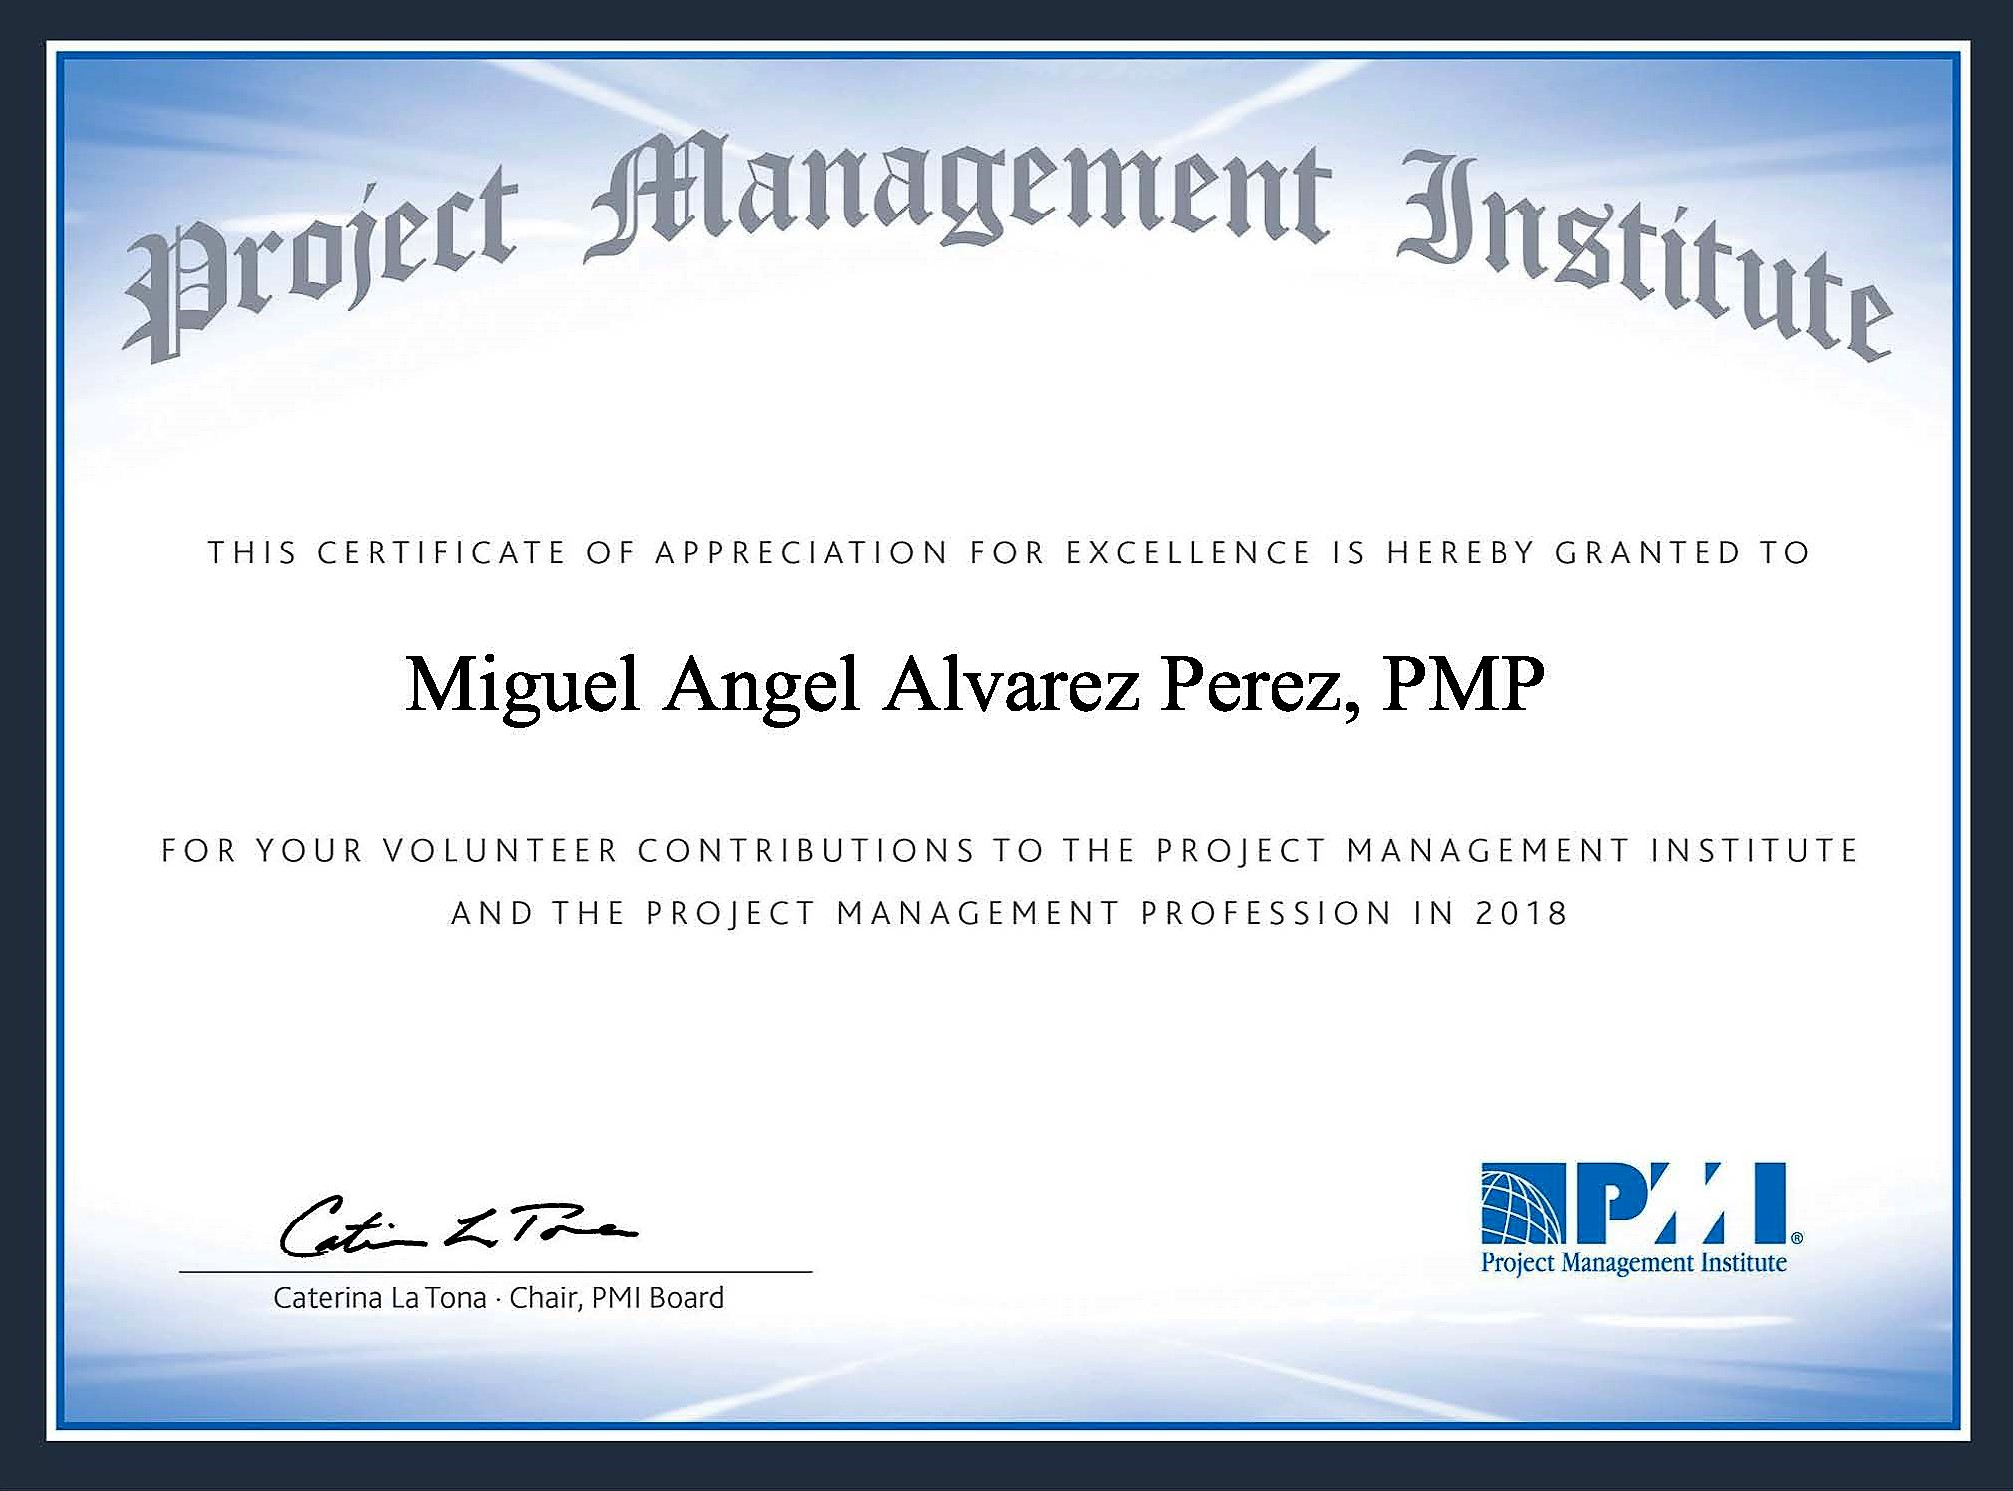 Certificado de Voluntario PMI 2018